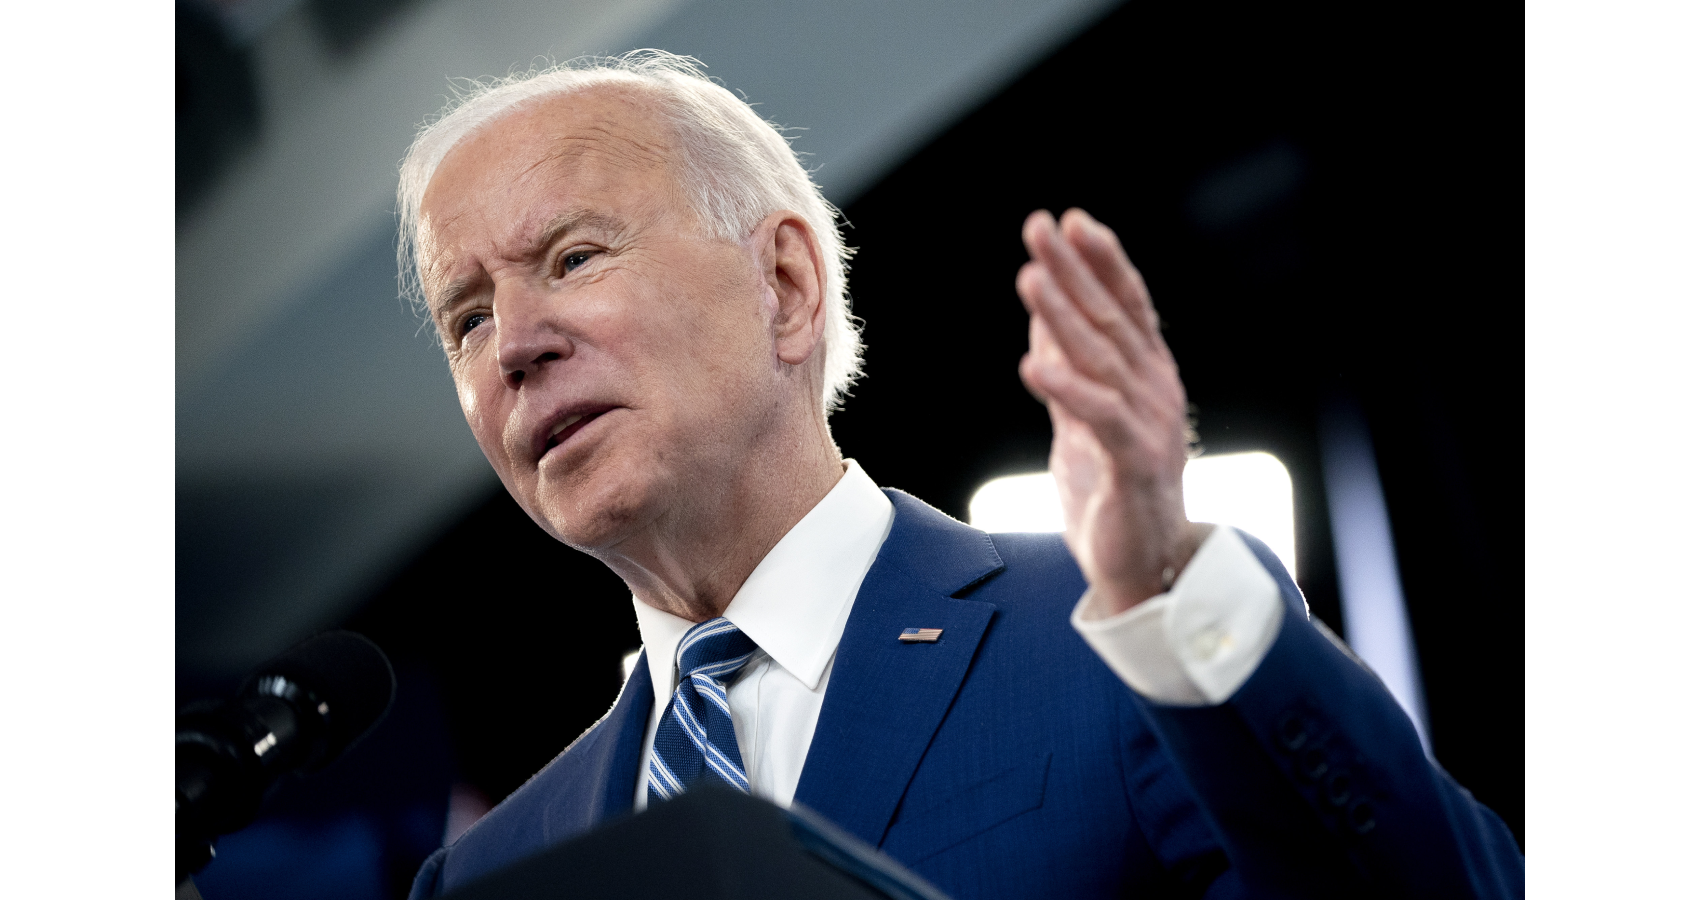 In Win For Tech, Biden Lets Trump's H1-B Visa Ban Expire